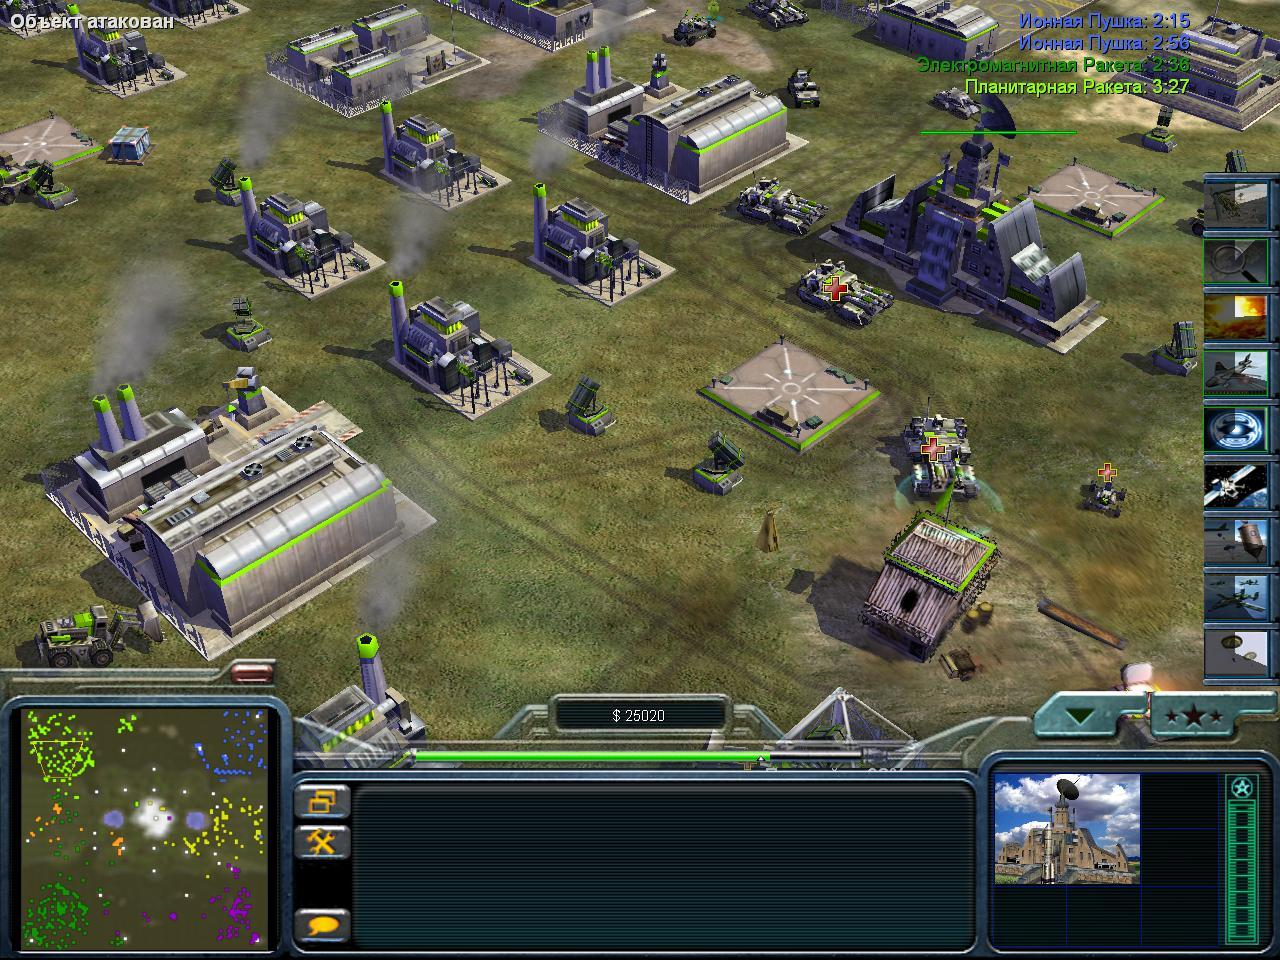 Command and conquer generals zero hour pc game free download.